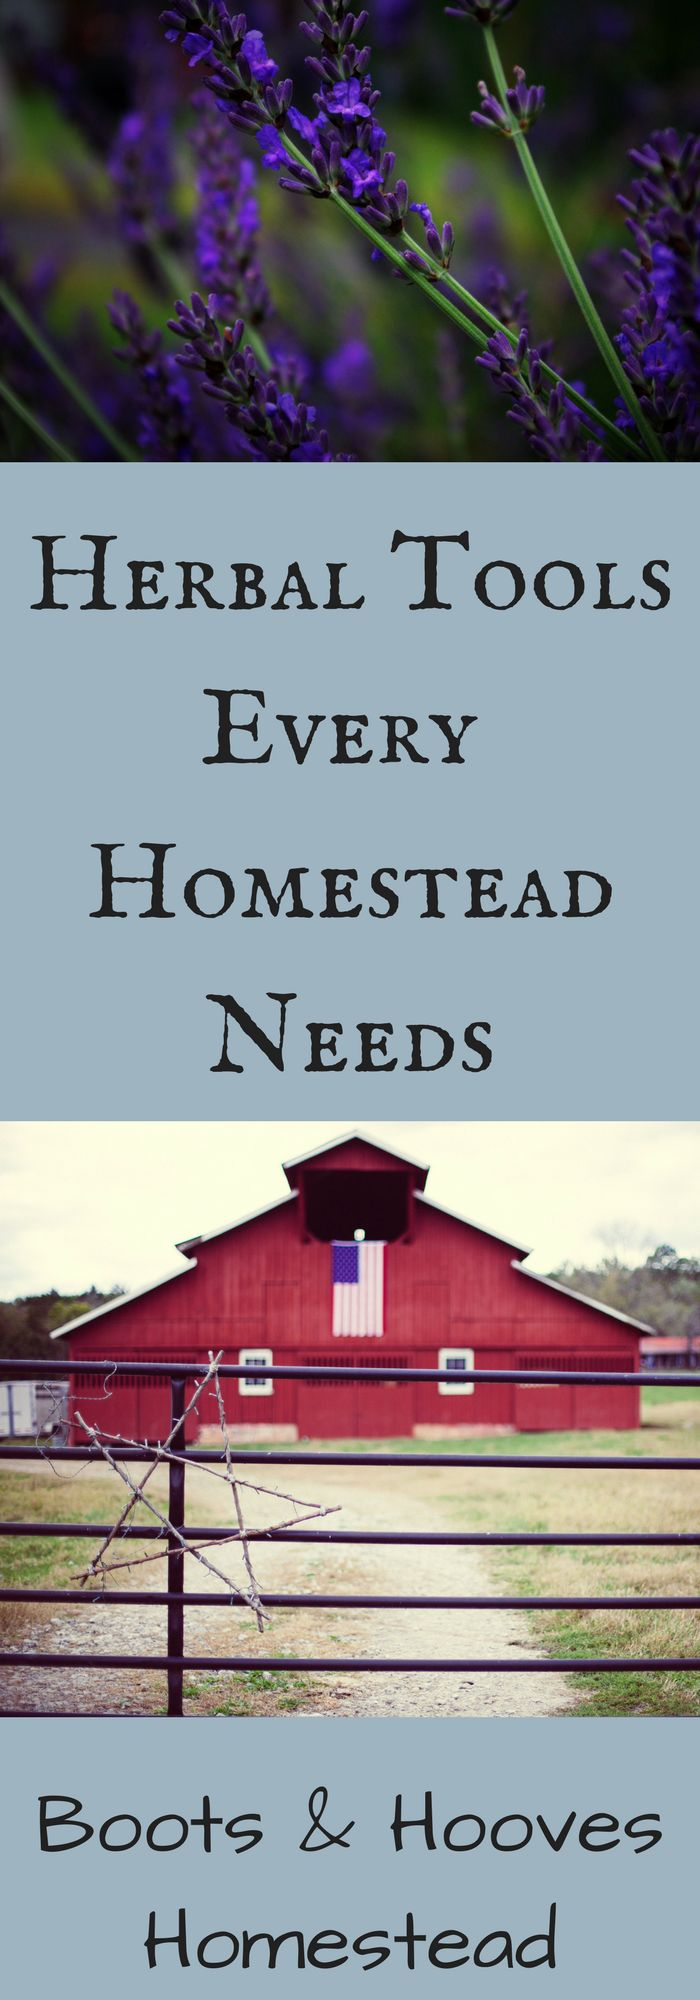 Herbal Resources for the Homestead - Boots & Hooves Homestead